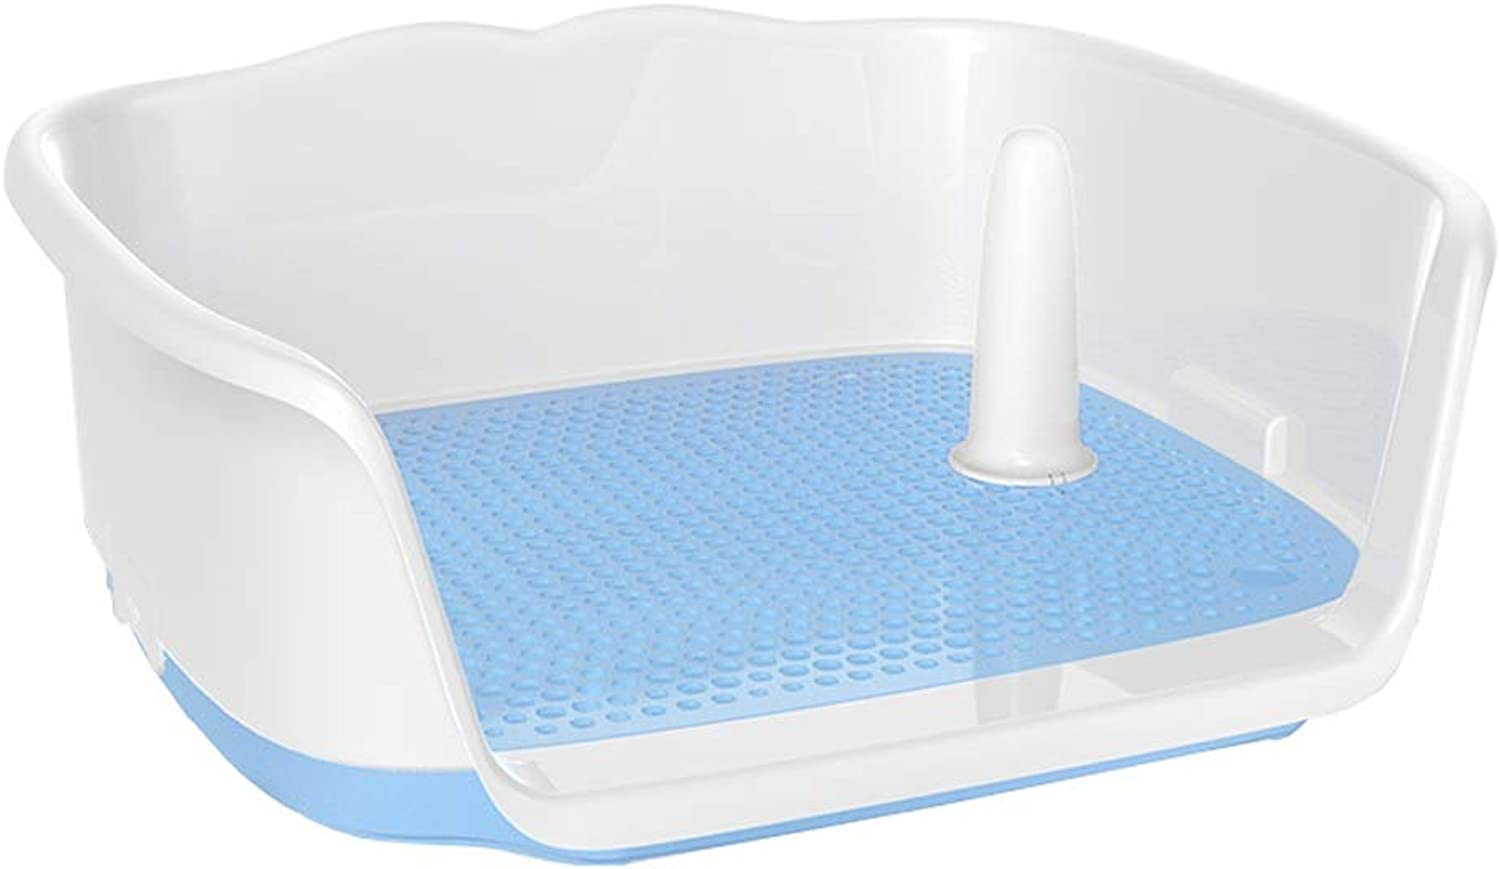 Ryan Dog Toilet, Indoor Training Flatbed Dog Potty Urinal Loo With Fence Pet Supplies For Small And Medium Dogs Toilet (color   bluee, Size   S)